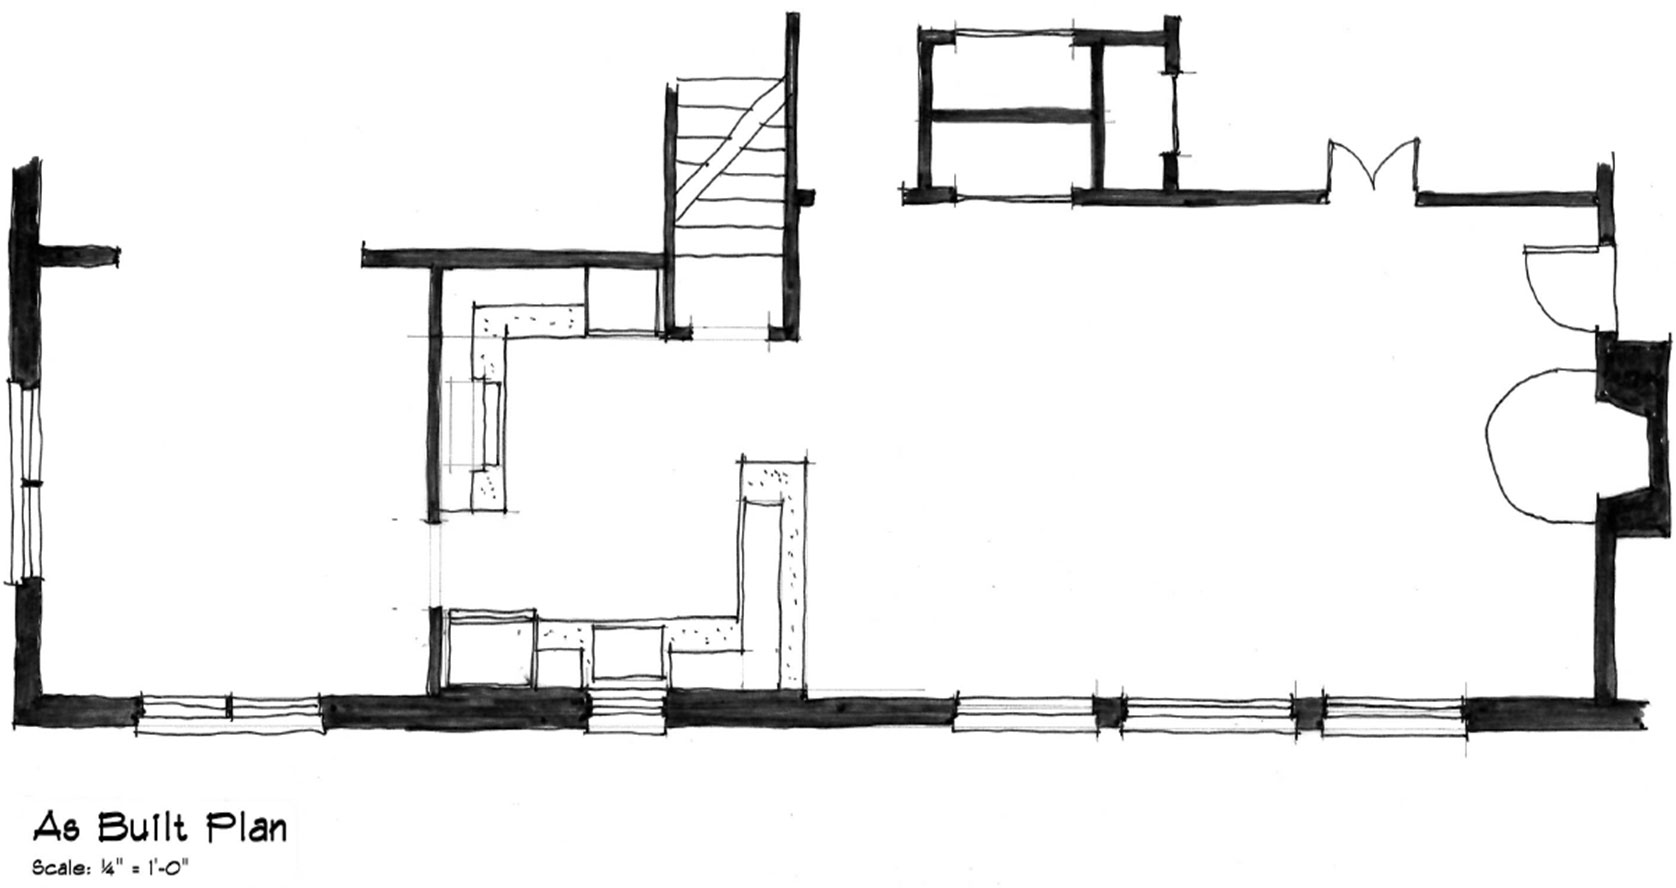 As Built Plan